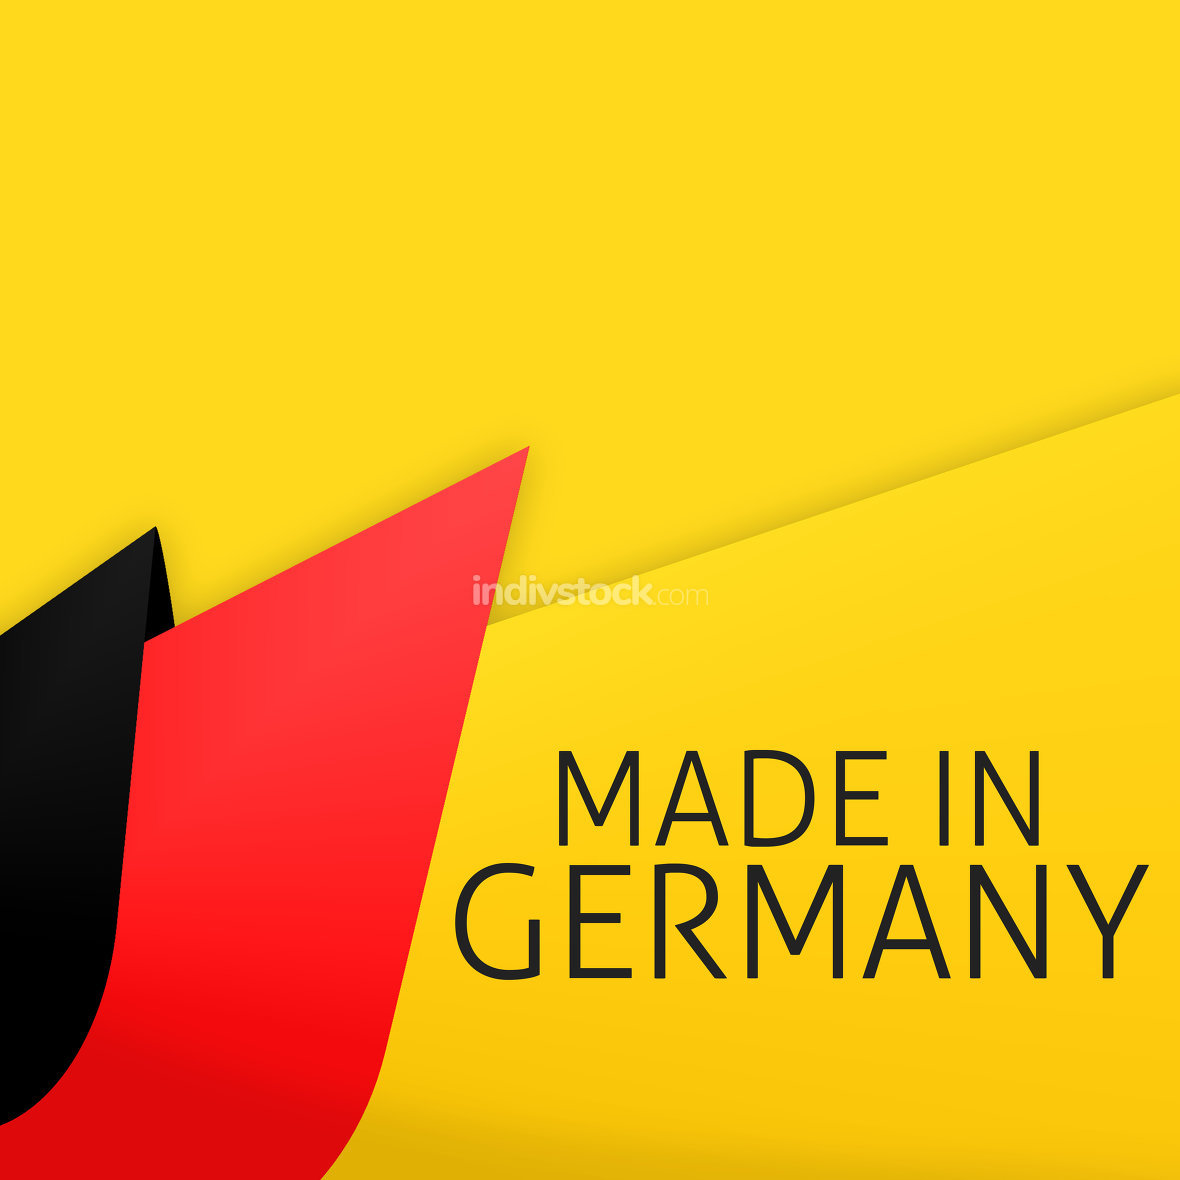 free download: made in germany background fresh modern design